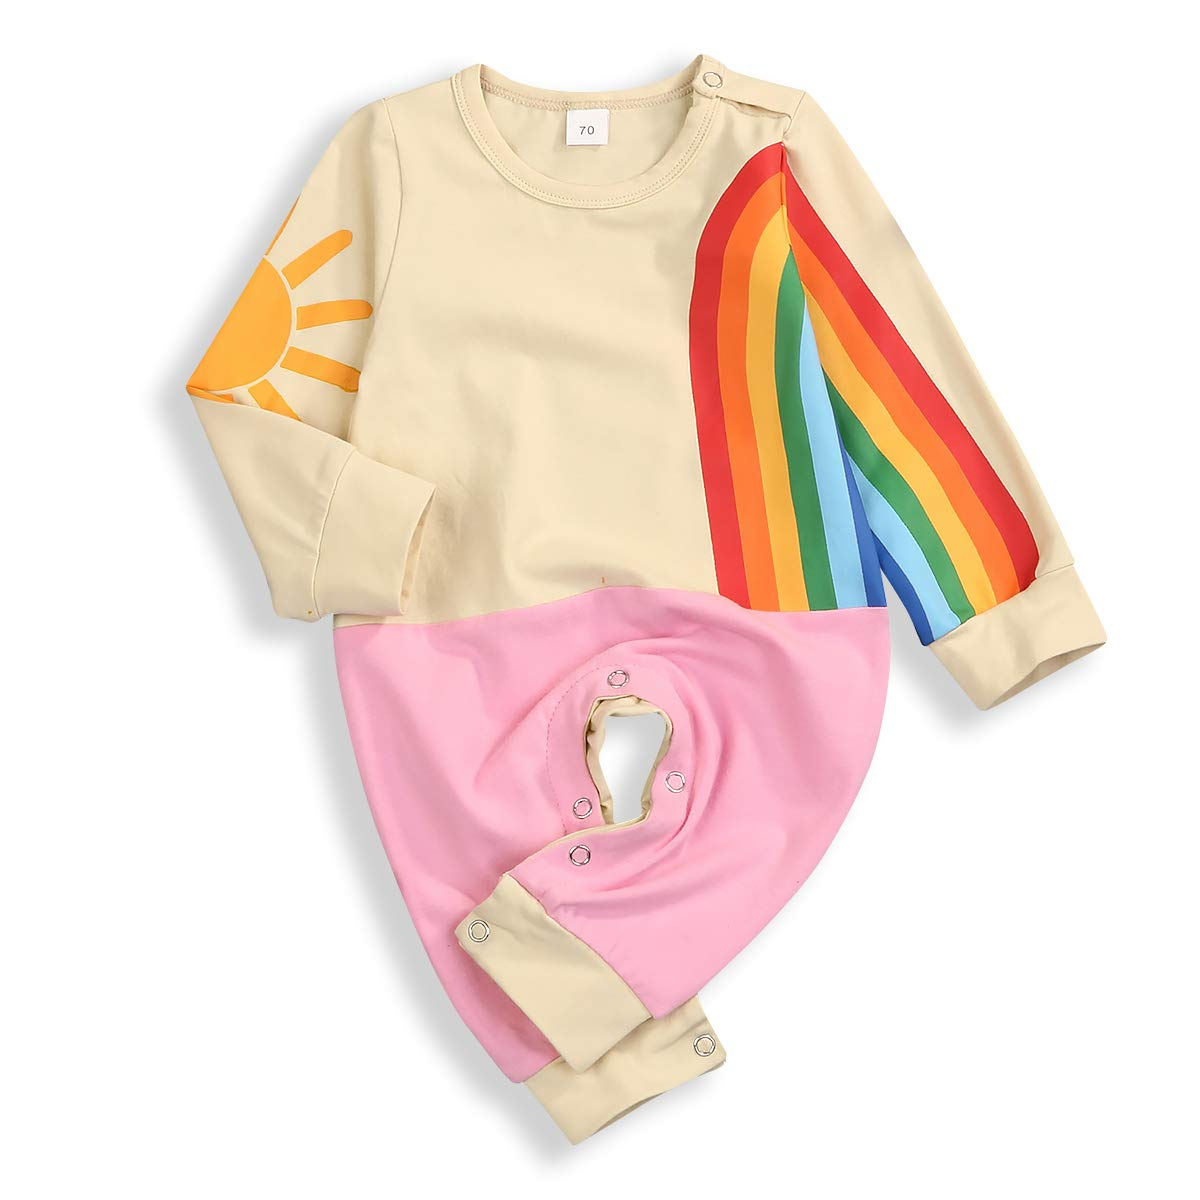 Toddler Baby Kids Boys Girls Clothes Sun and Rainbow Print Long Sleeve T-Shirt Tops+ Pants 2pc Outfits Set